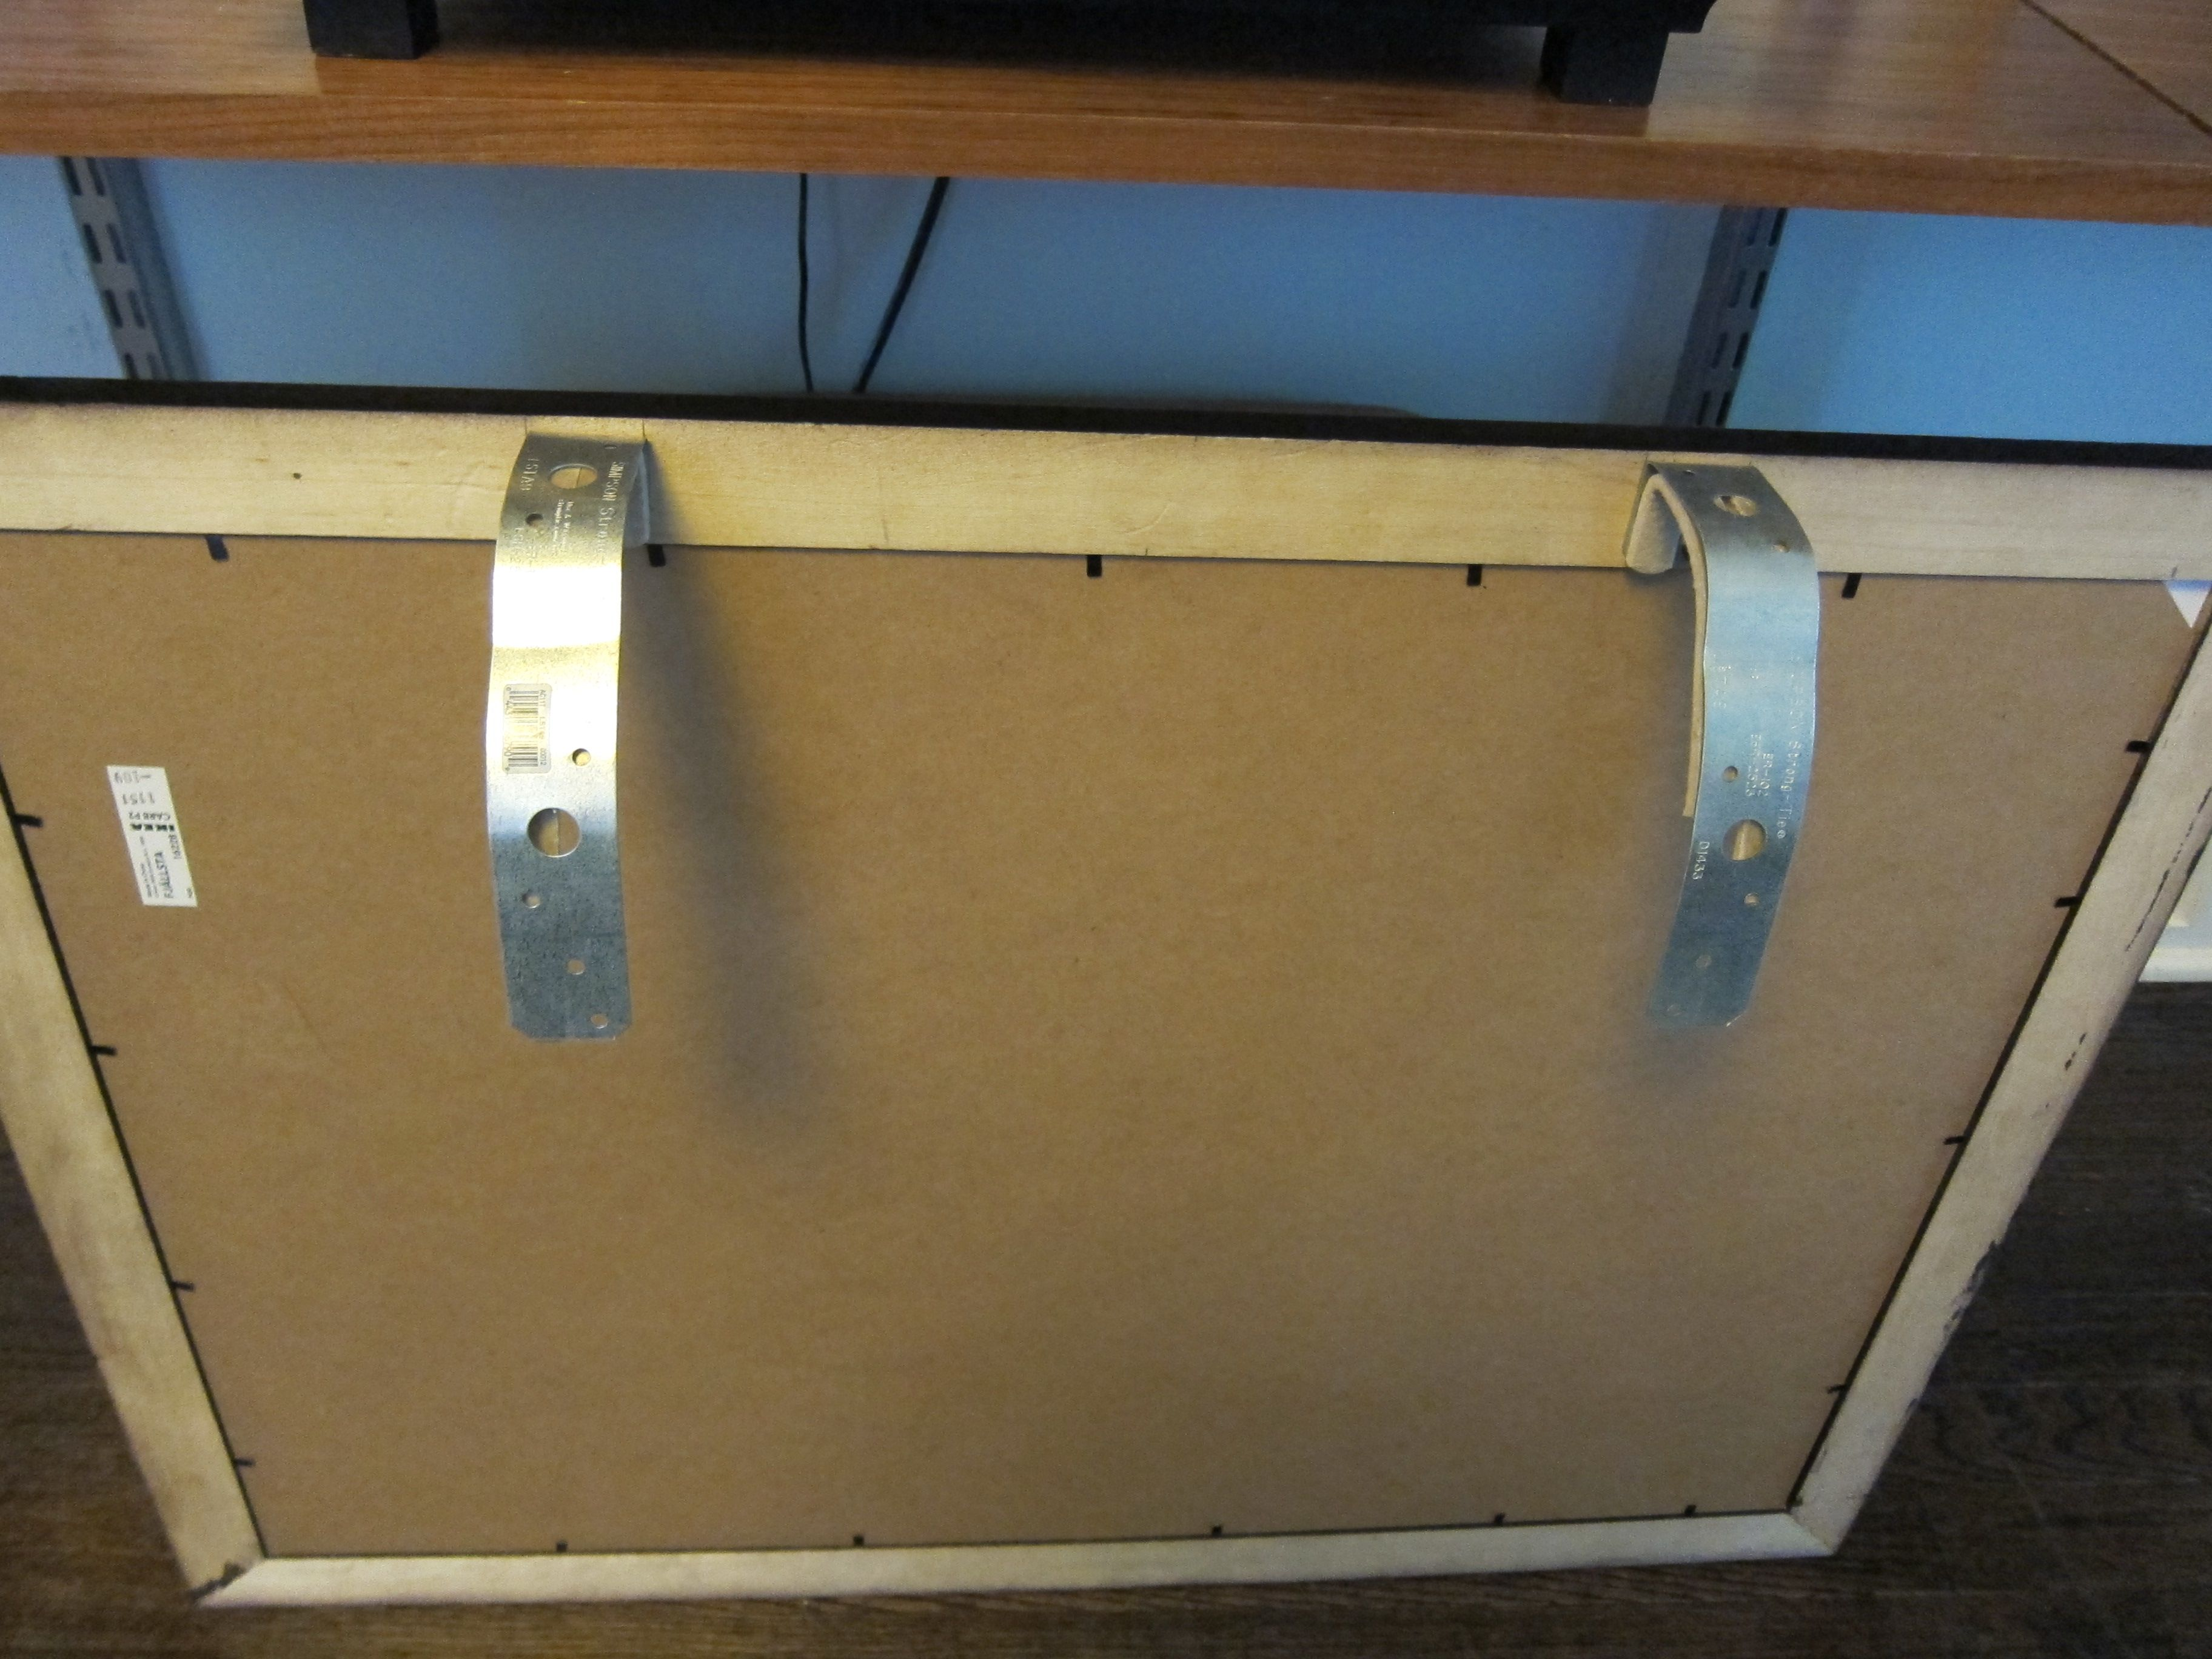 How To Hang A Picture Over A Tv To Cover It Up Attach Bent Metal